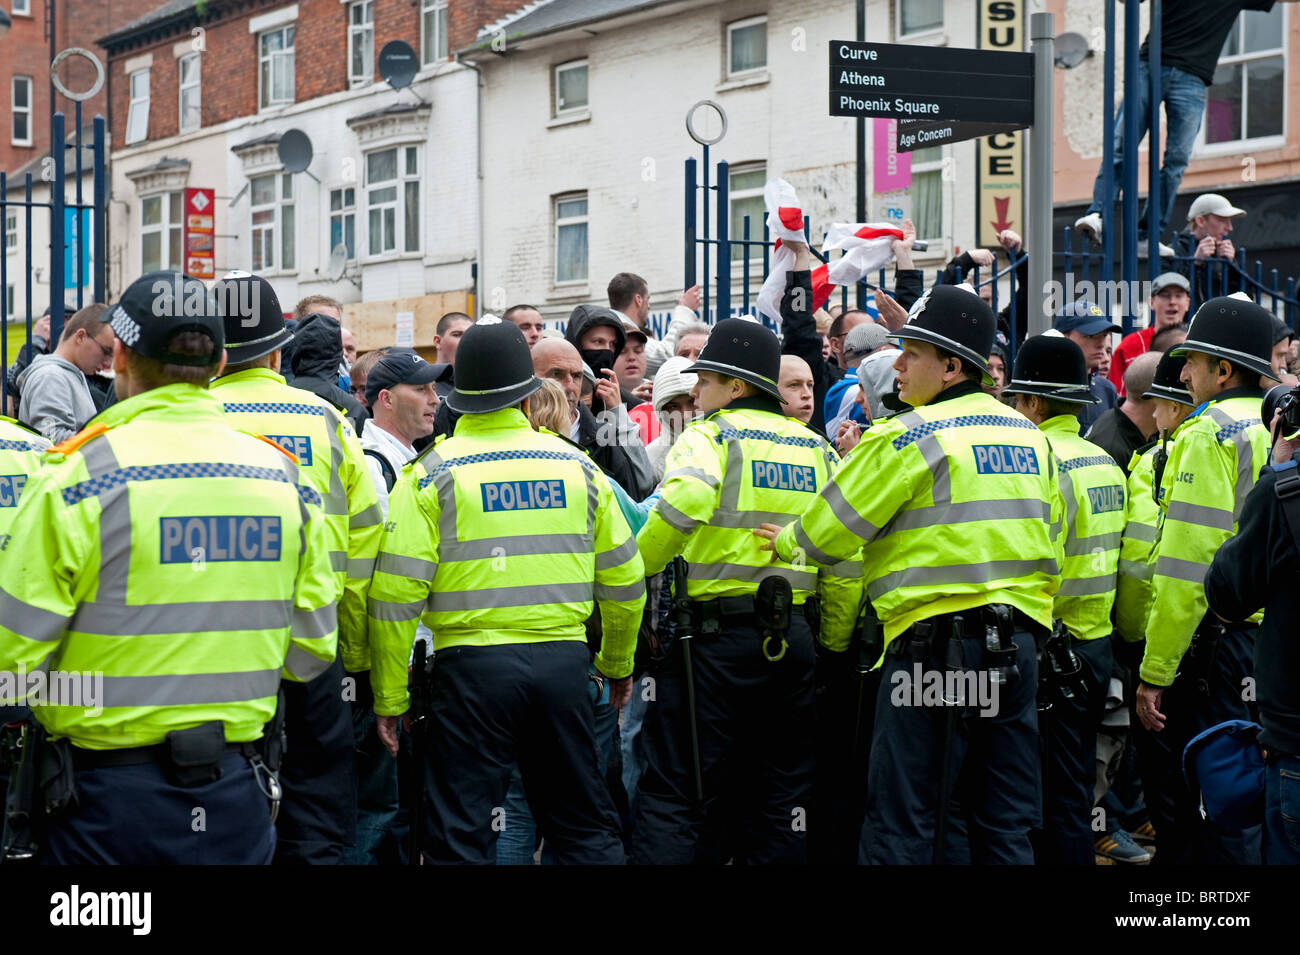 Policing The English Defence League demonstration in Leicester. 9th October 2010. - Stock Image